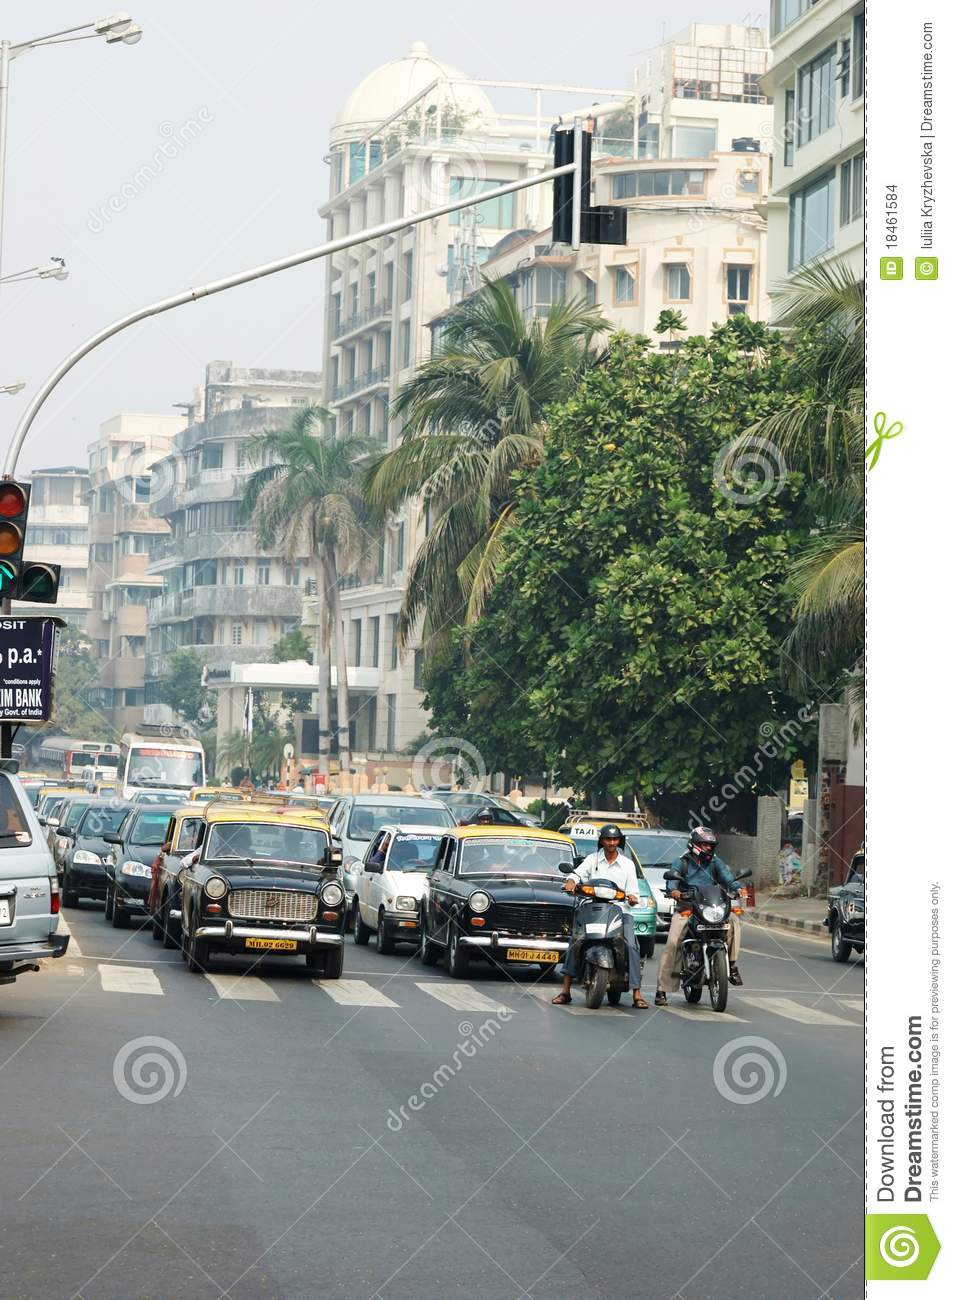 the problem big and crowded cities facee Most of the million cities of india are facing the problem of this pollution due to phenomenal growth in the number of automobiles, factories, mills, blaring sounds of loudspeakers and hustles and bustles of crowded market places.